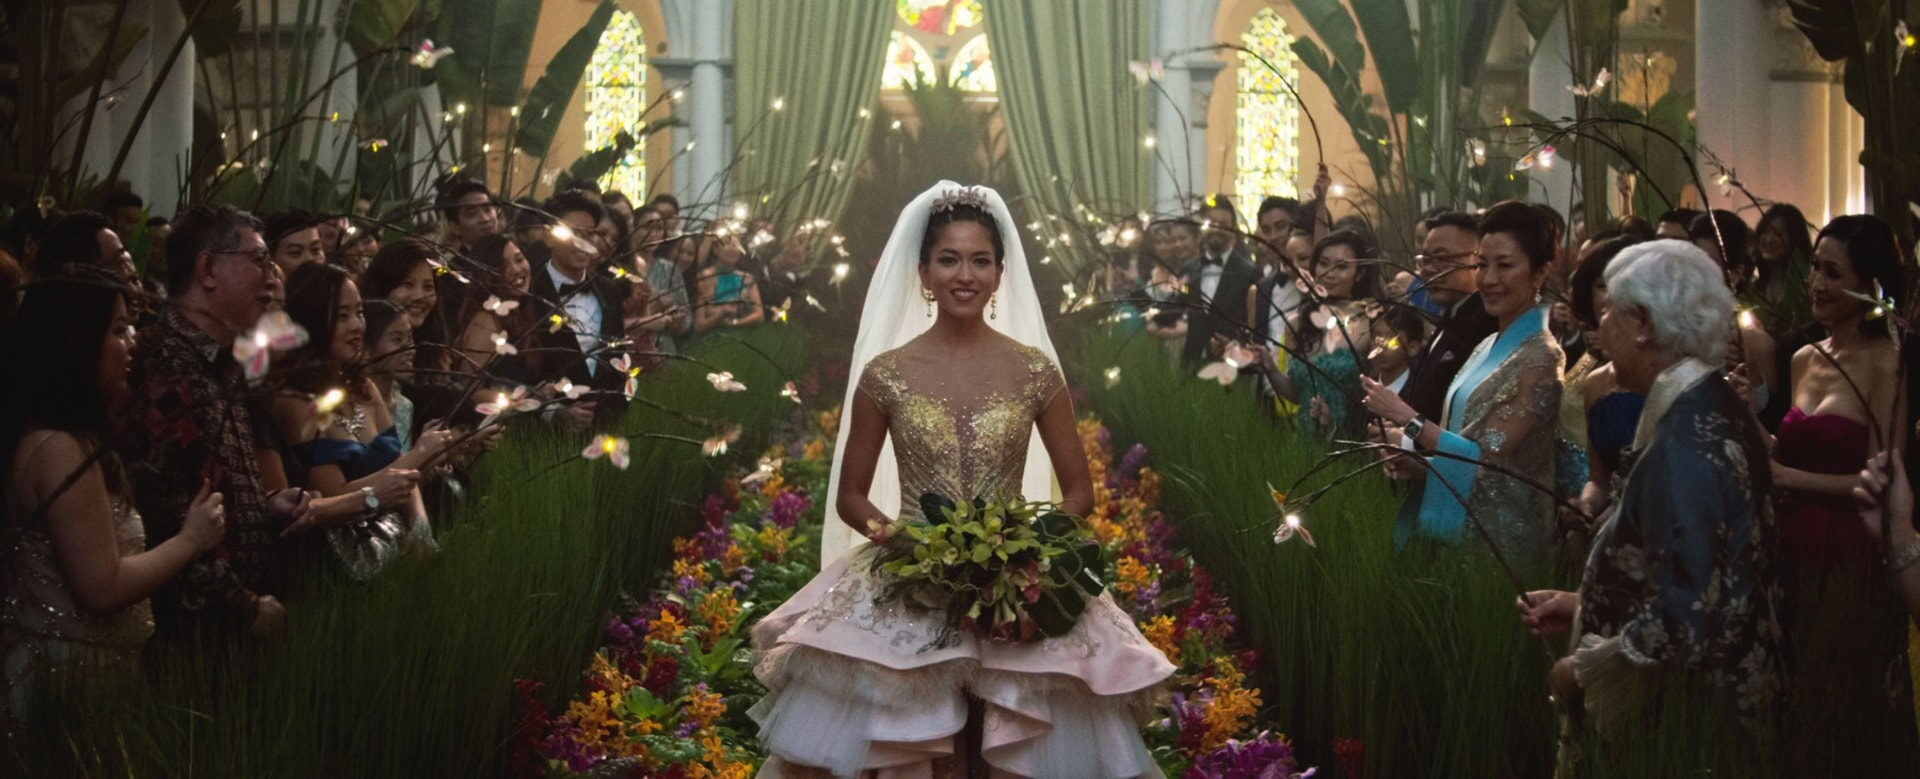 """A scene from Warner Bros. Pictures' and SK Global Entertainment's contemporary romantic comedy """"CRAZY RICH ASIANS,"""" a Warner Bros. Pictures release. Photo Credit: Courtesy of Warner Bros. Pictures"""